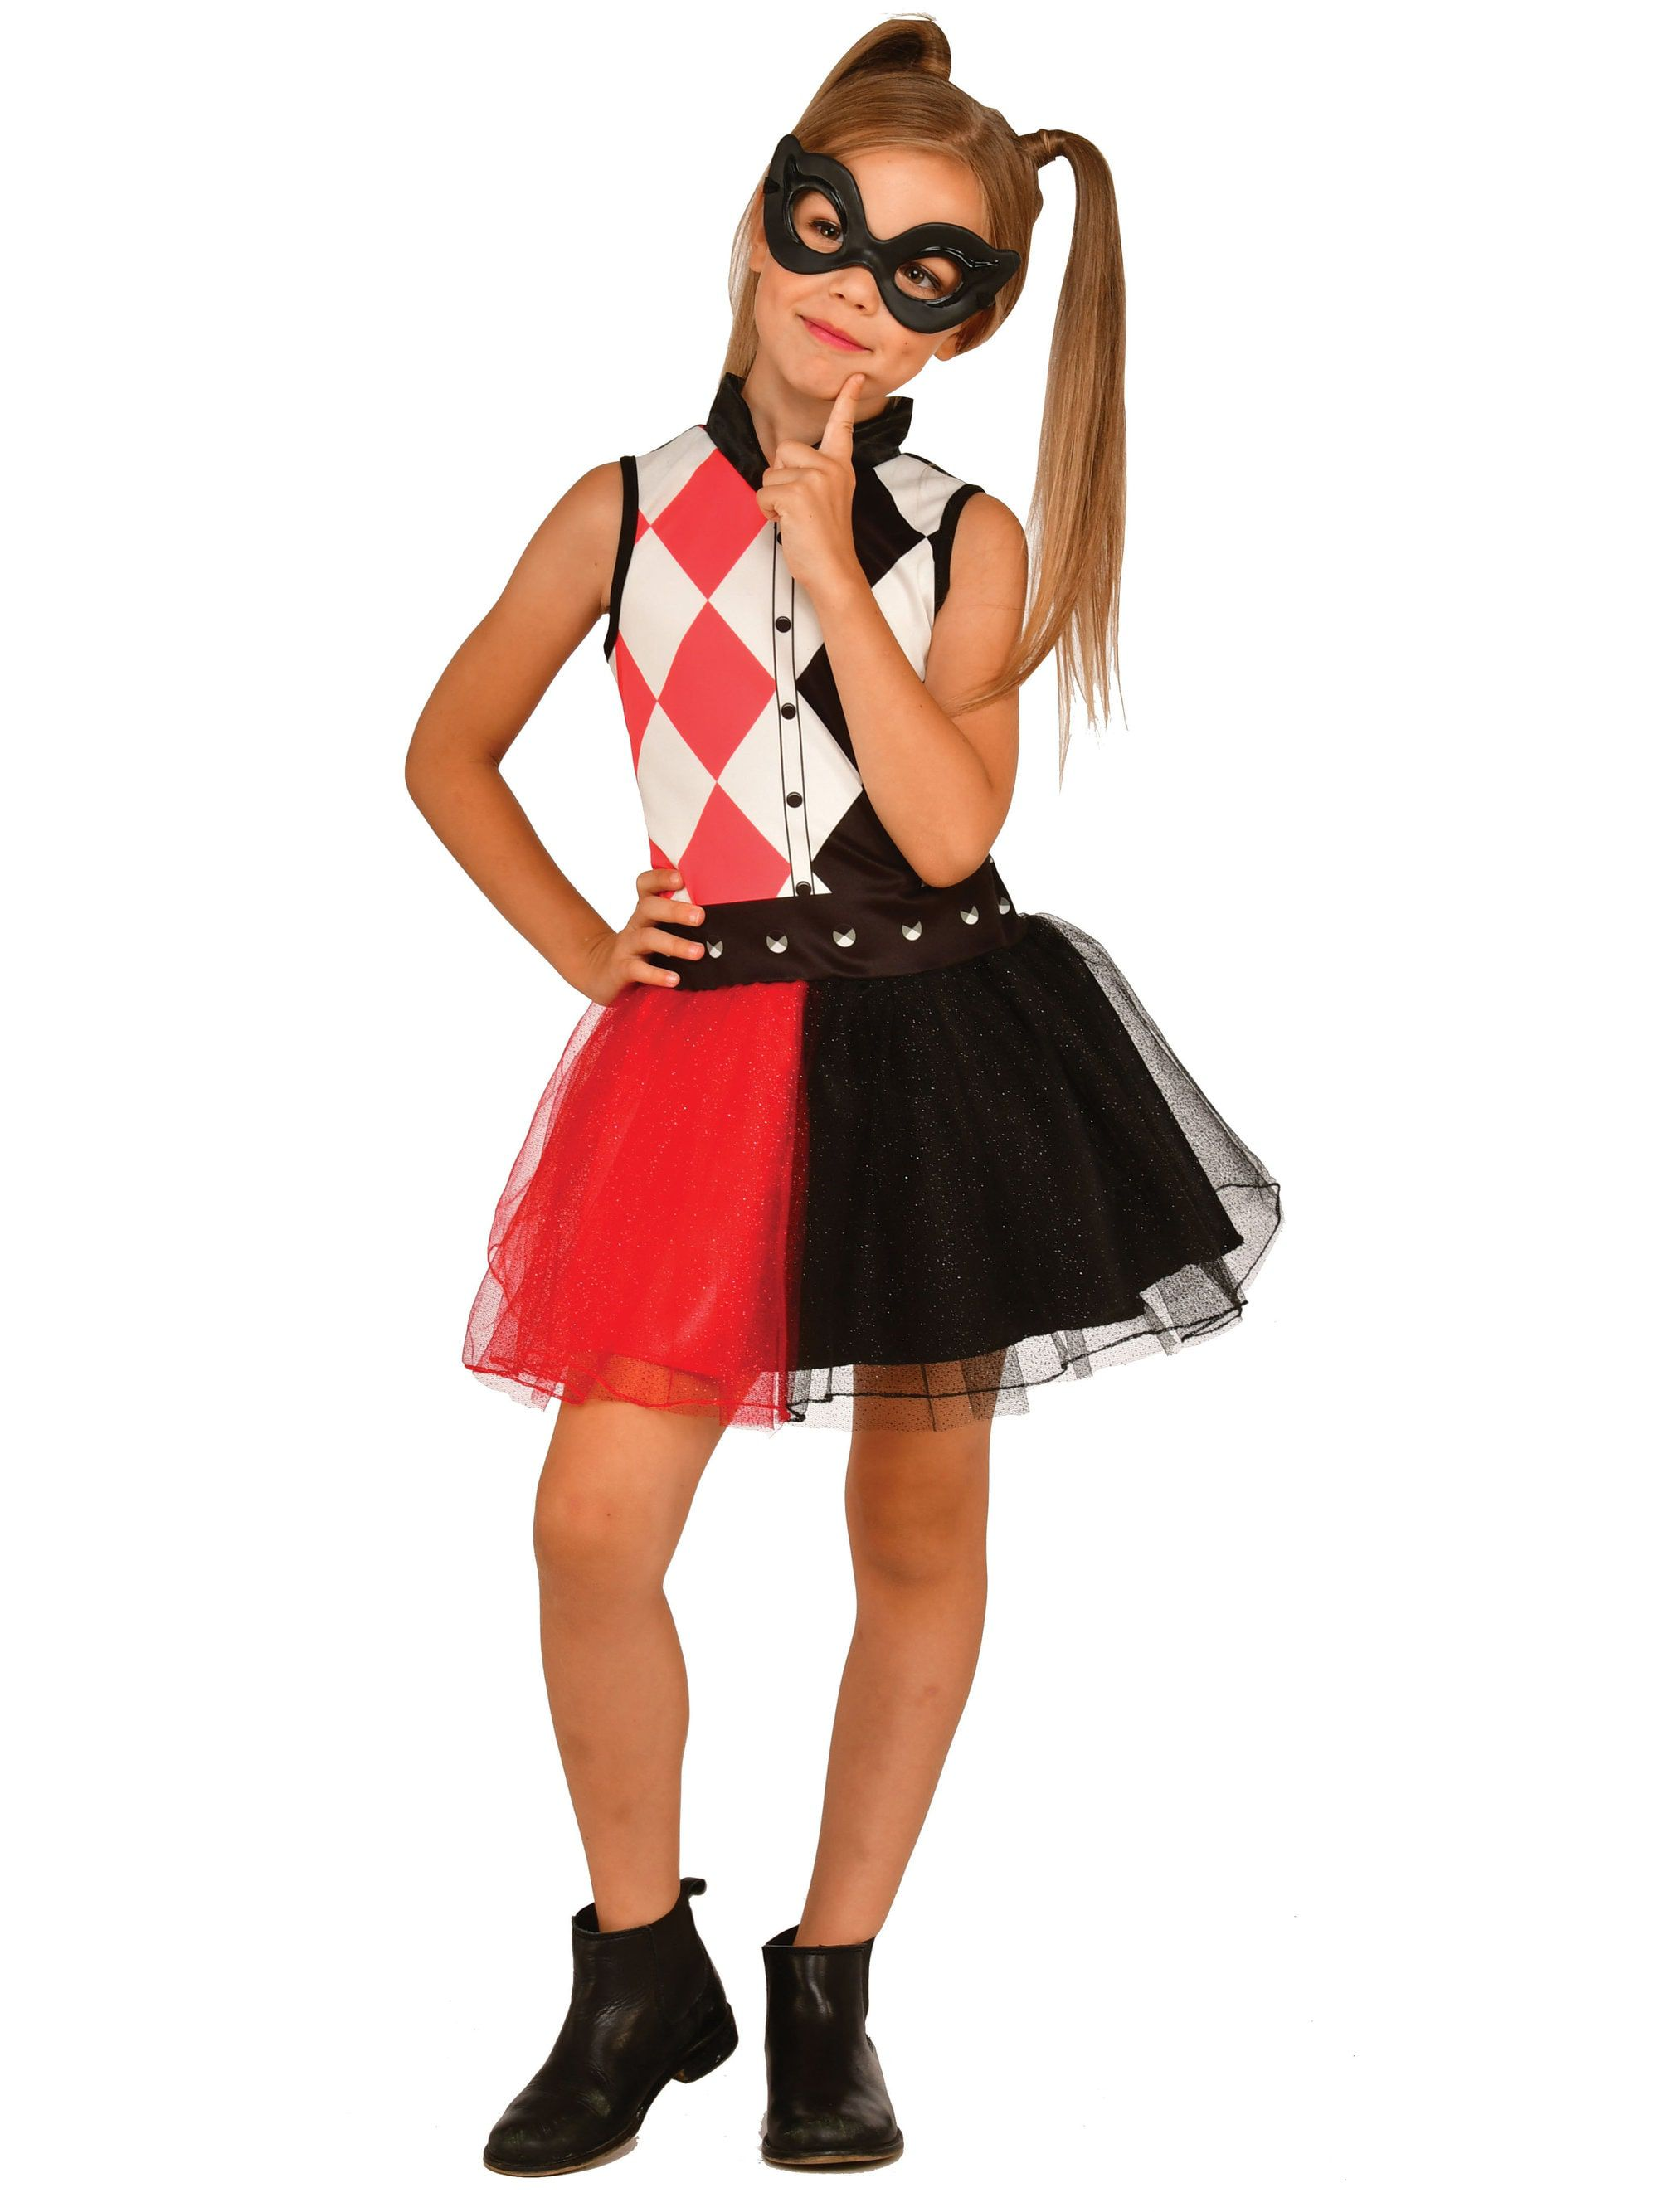 Dc Super Hero Harley Quinn Tank Dress For Children Girls Costumes